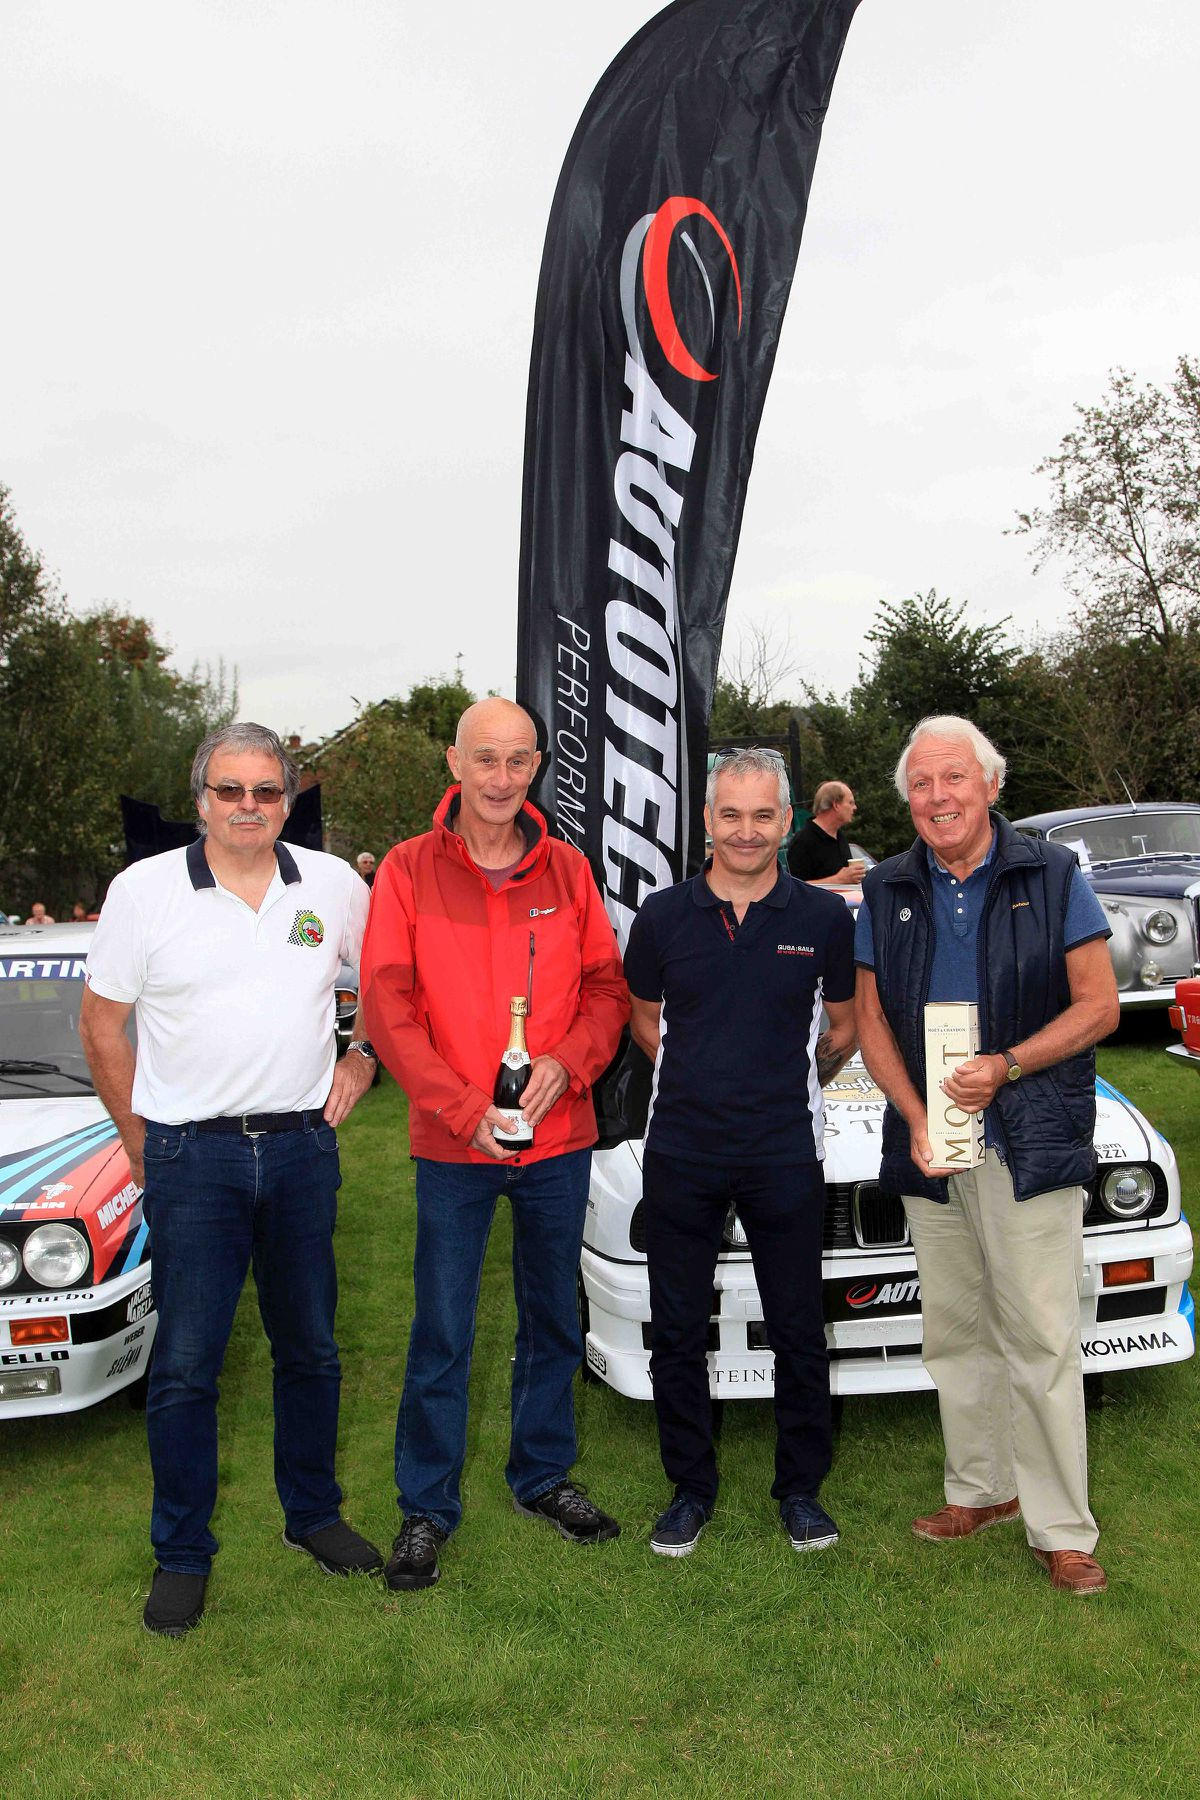 Steve Woodhouse, event organiser and member of Newport Ex Round Table Club, with Glenn Holloway, winner of the best prepared car, Peter Thorpe, event sponsor and Mike Ridley, winner of the visitor favourite car